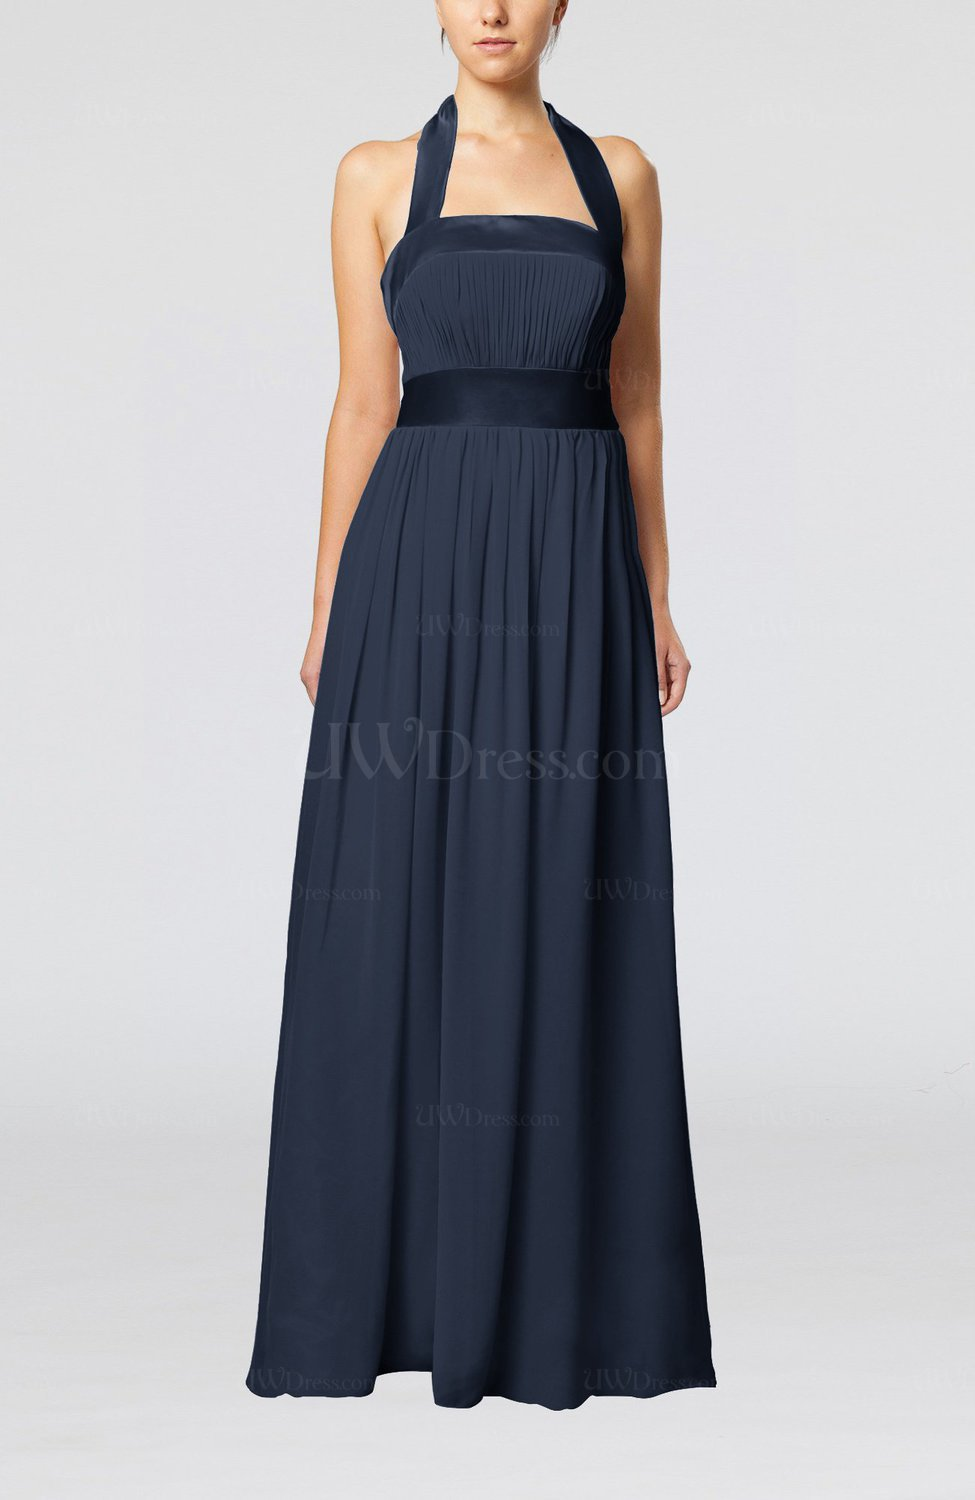 Navy Blue Elegant A Line Sleeveless Chiffon Floor Length